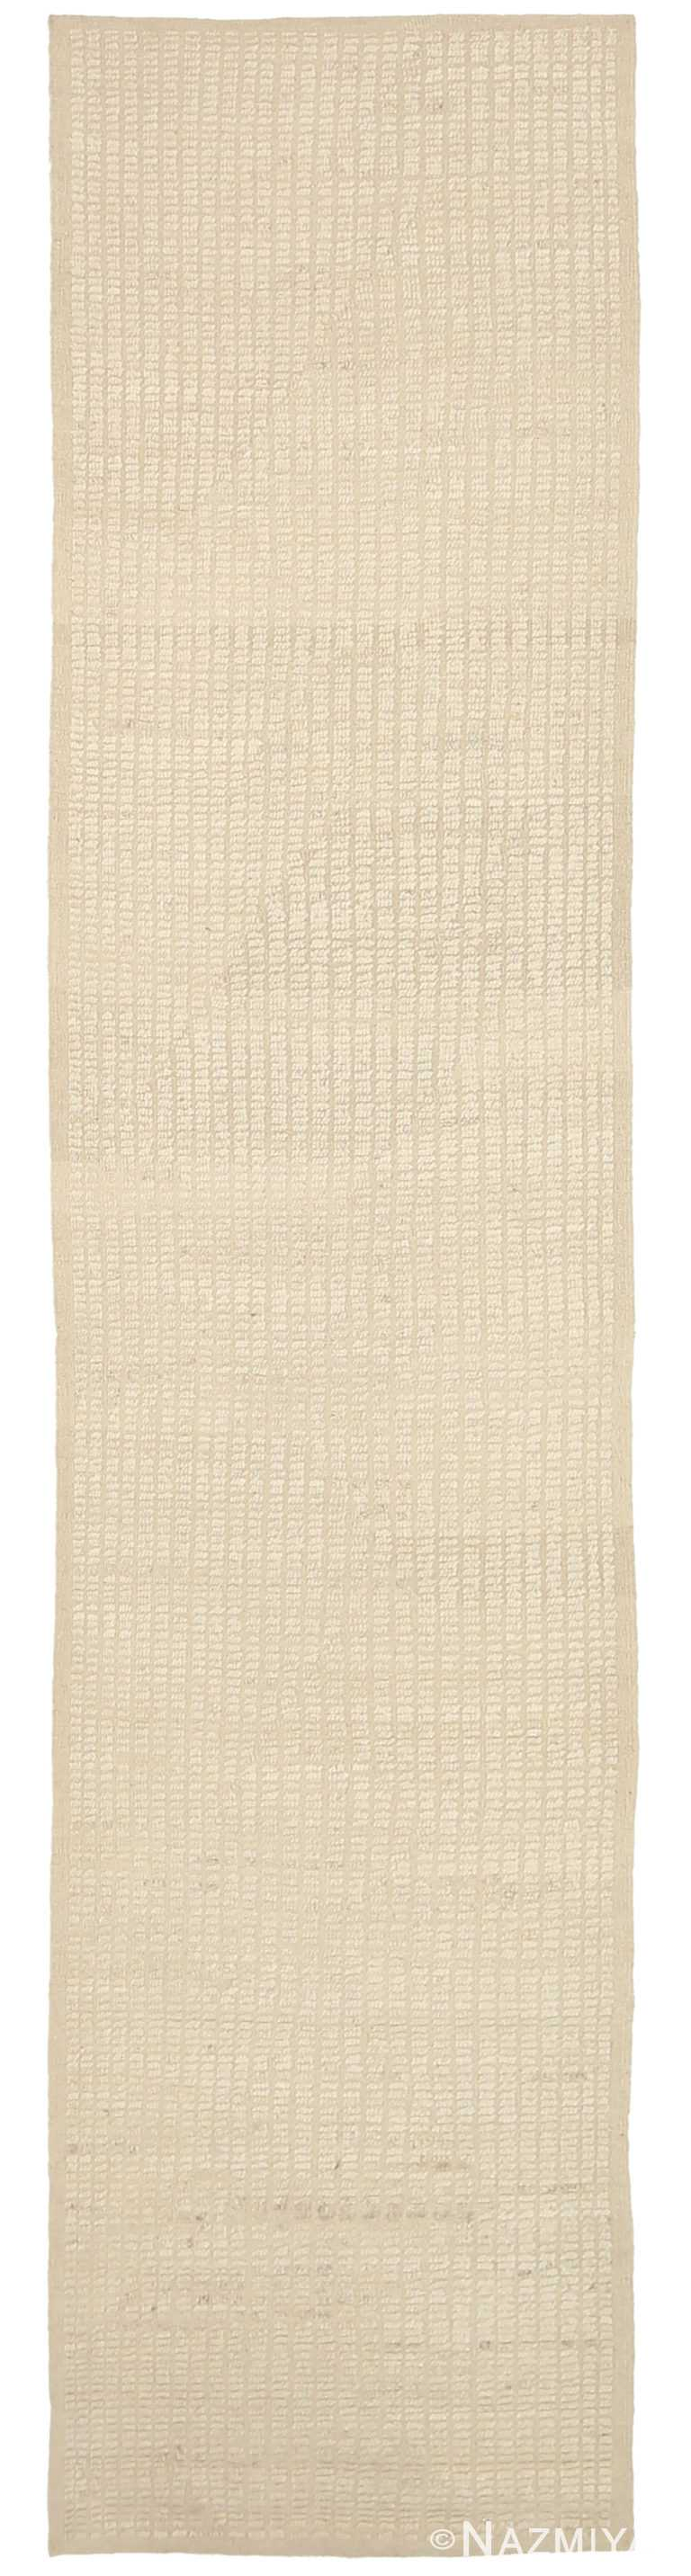 Ivory Textured Modern Distressed Runner Rug 60884 by Nazmiyal Antique Rugs